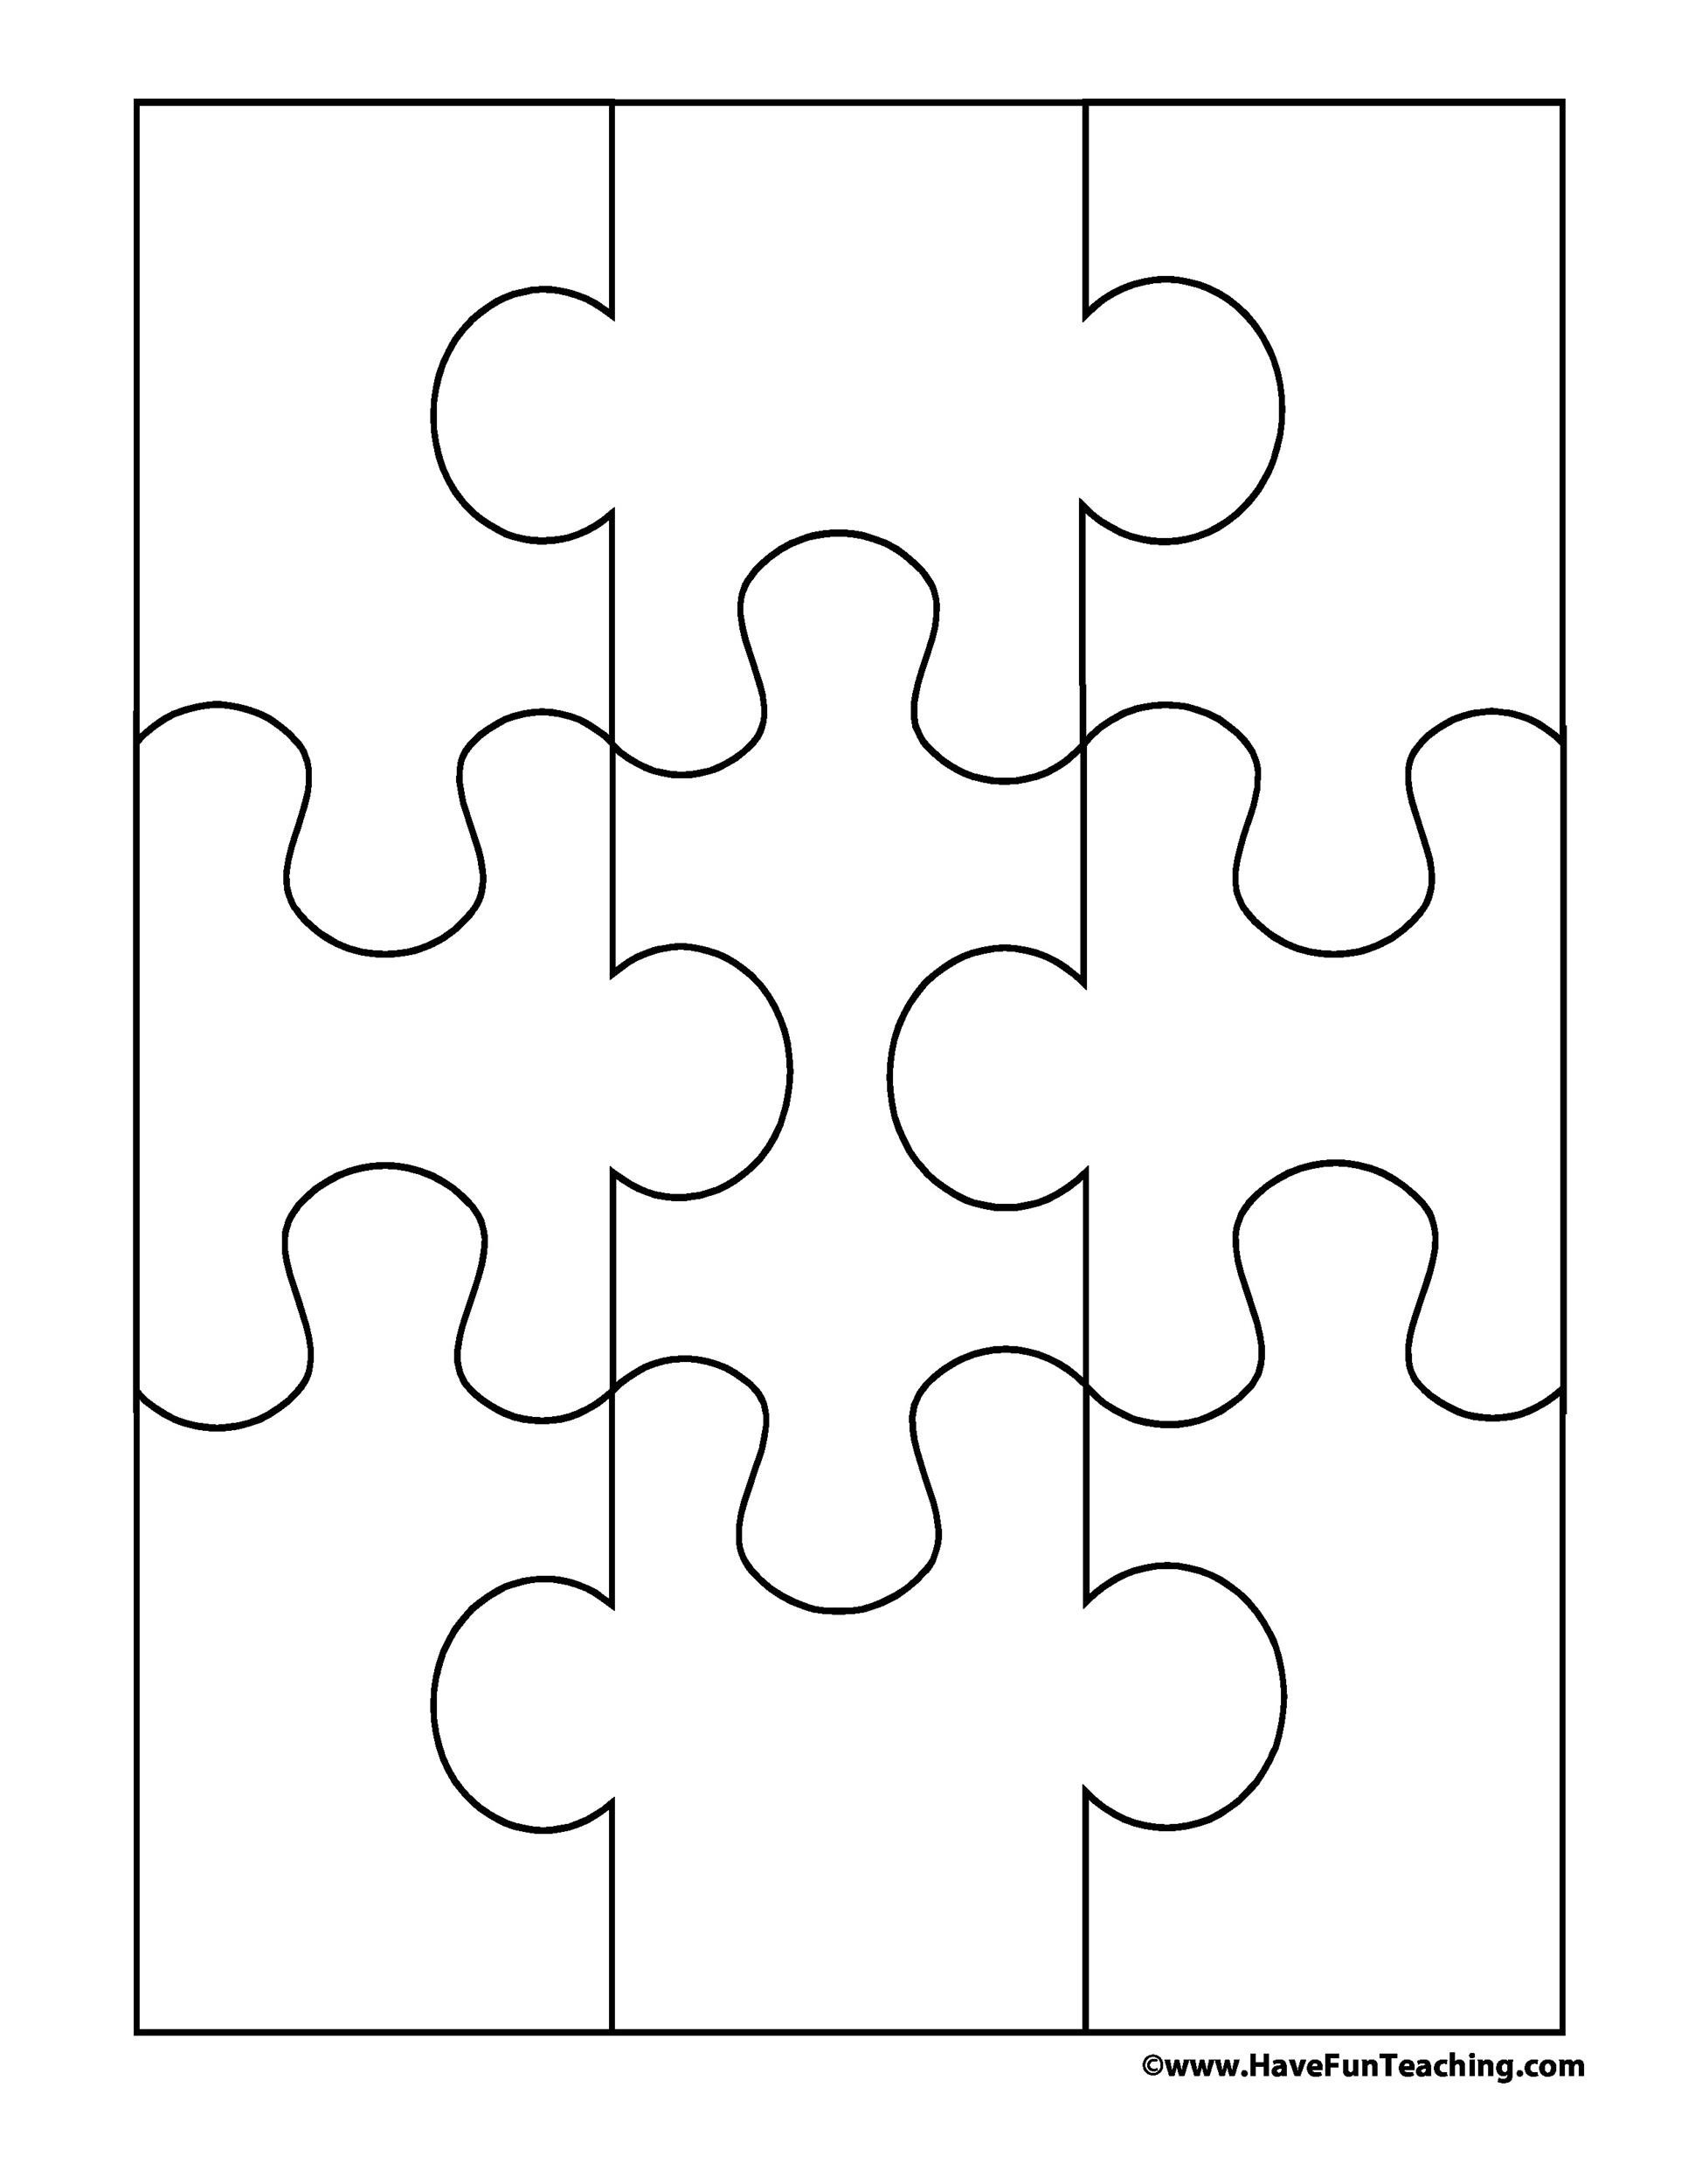 photo regarding Printable Blank Puzzle titled 19 Printable Puzzle Piece Templates ᐅ Template Lab